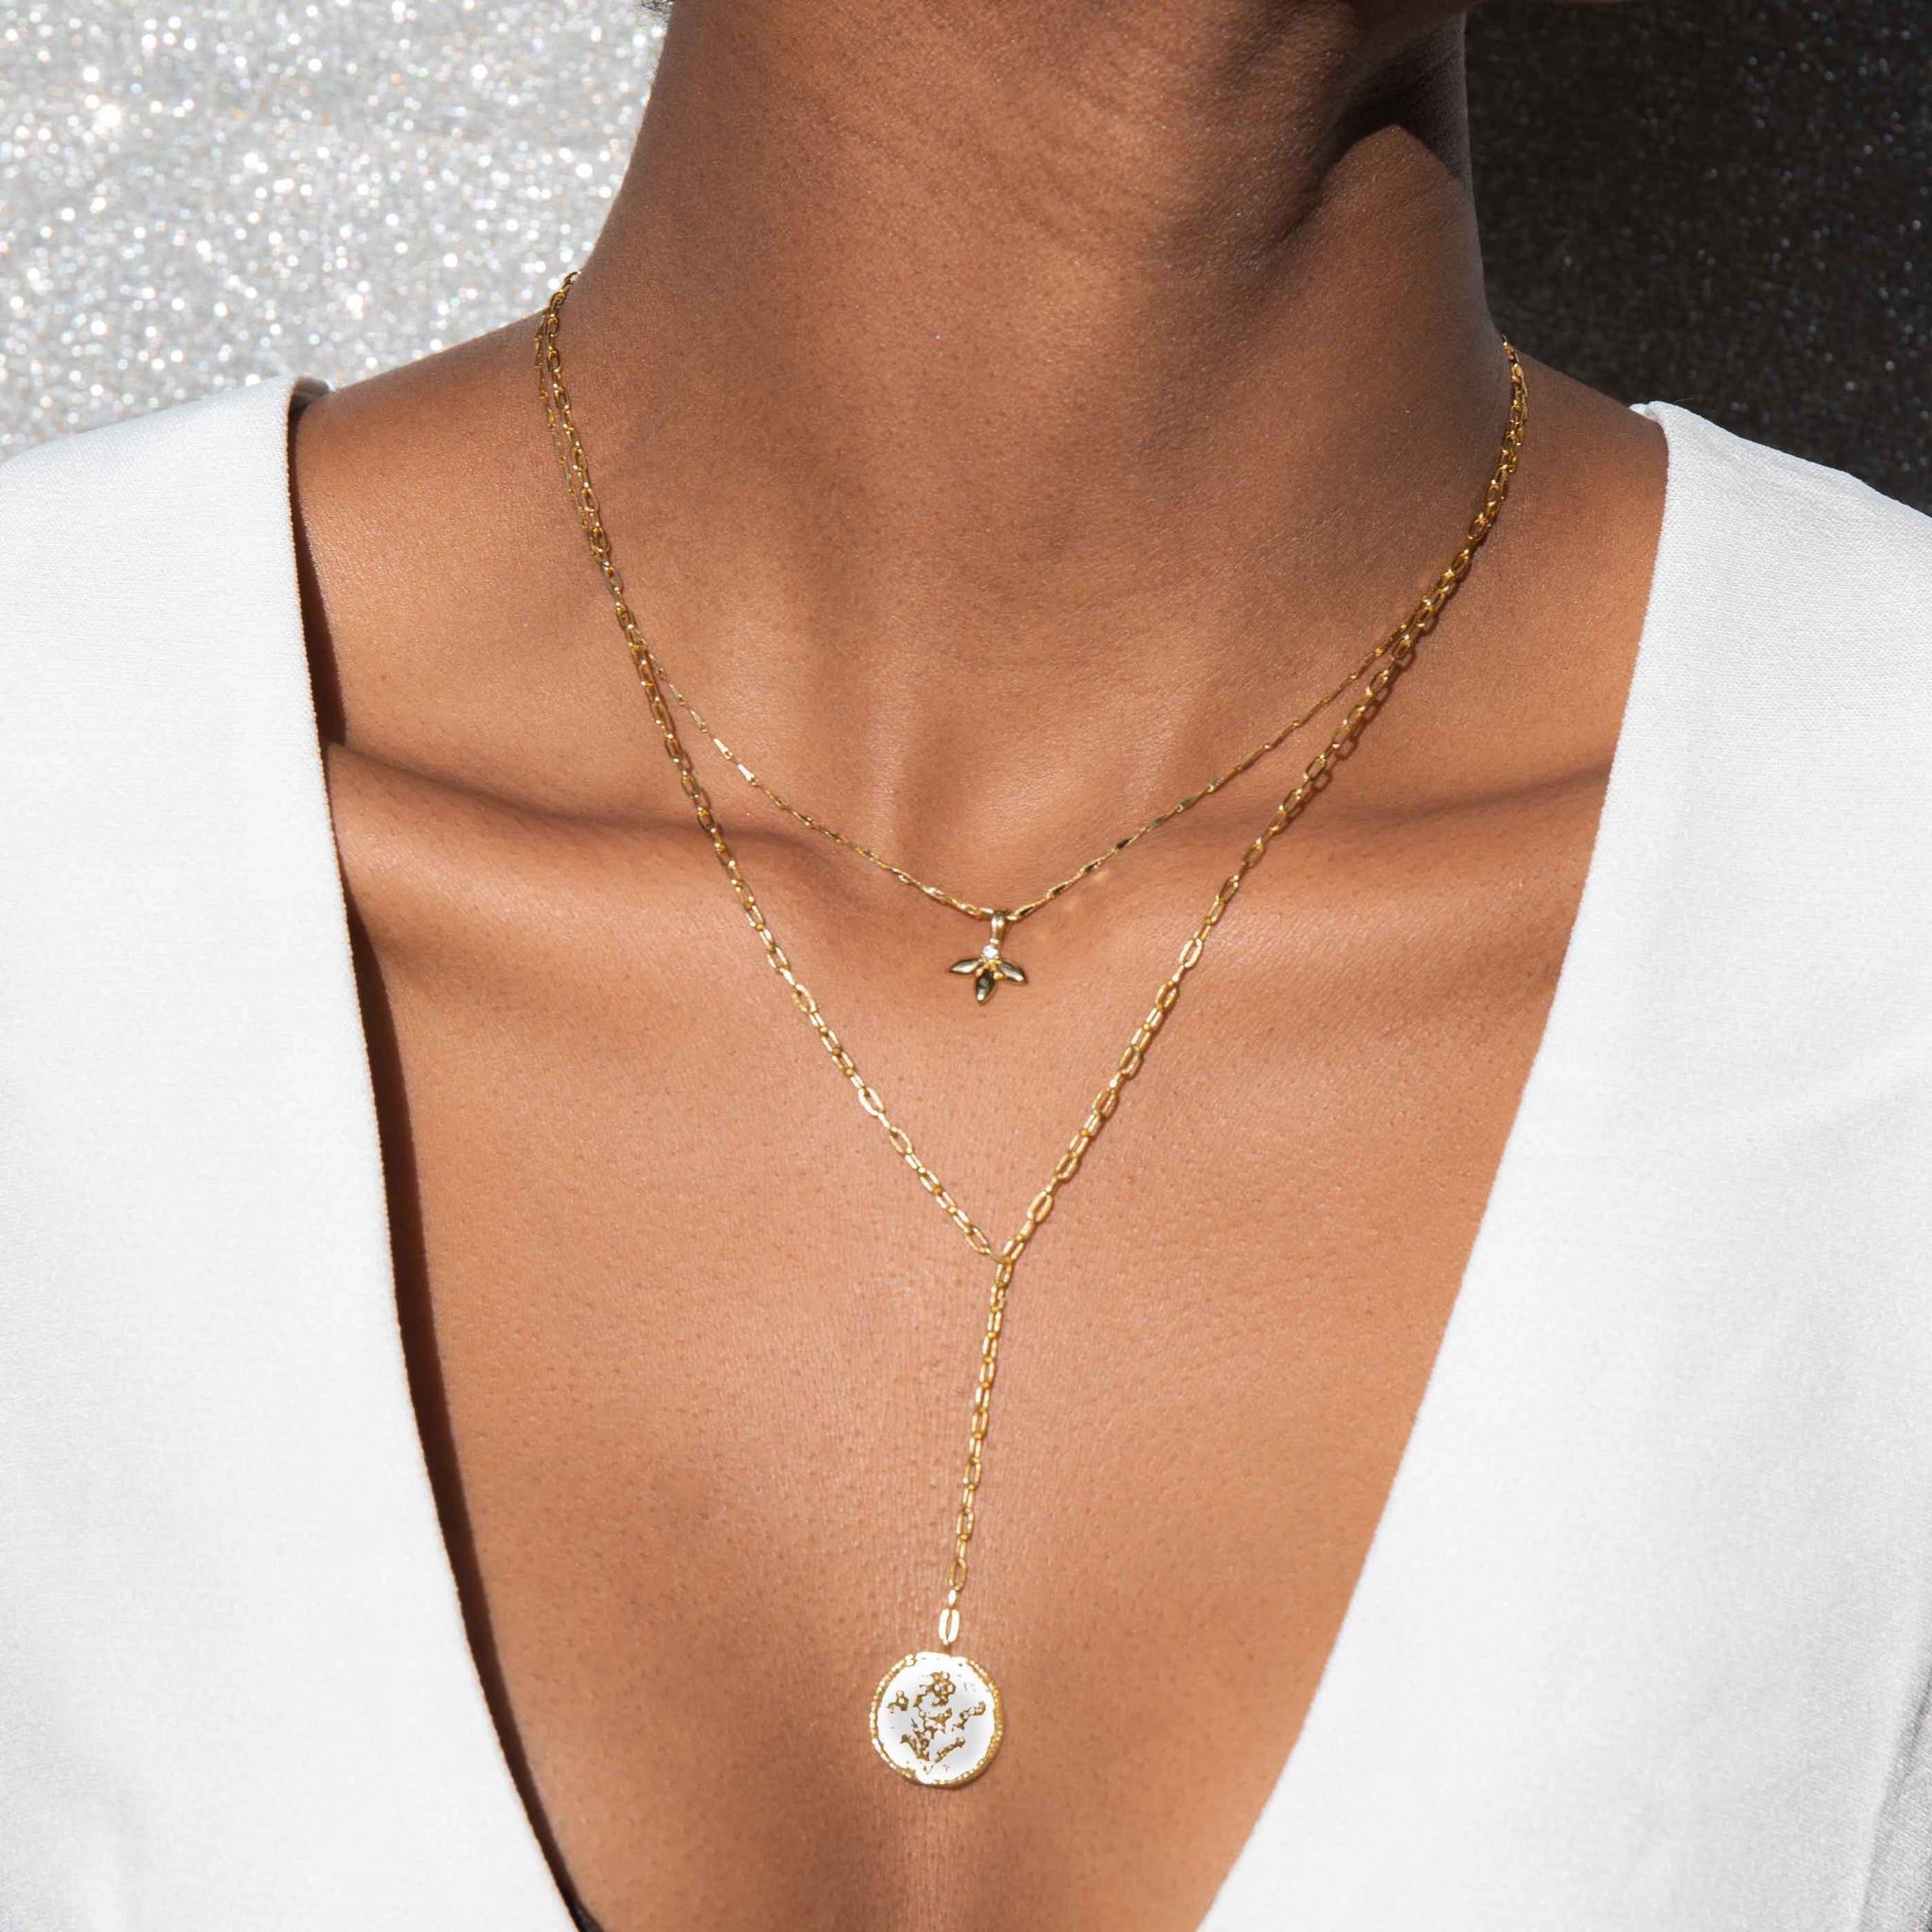 gold dainty pendant necklace worn with gold lariat necklace